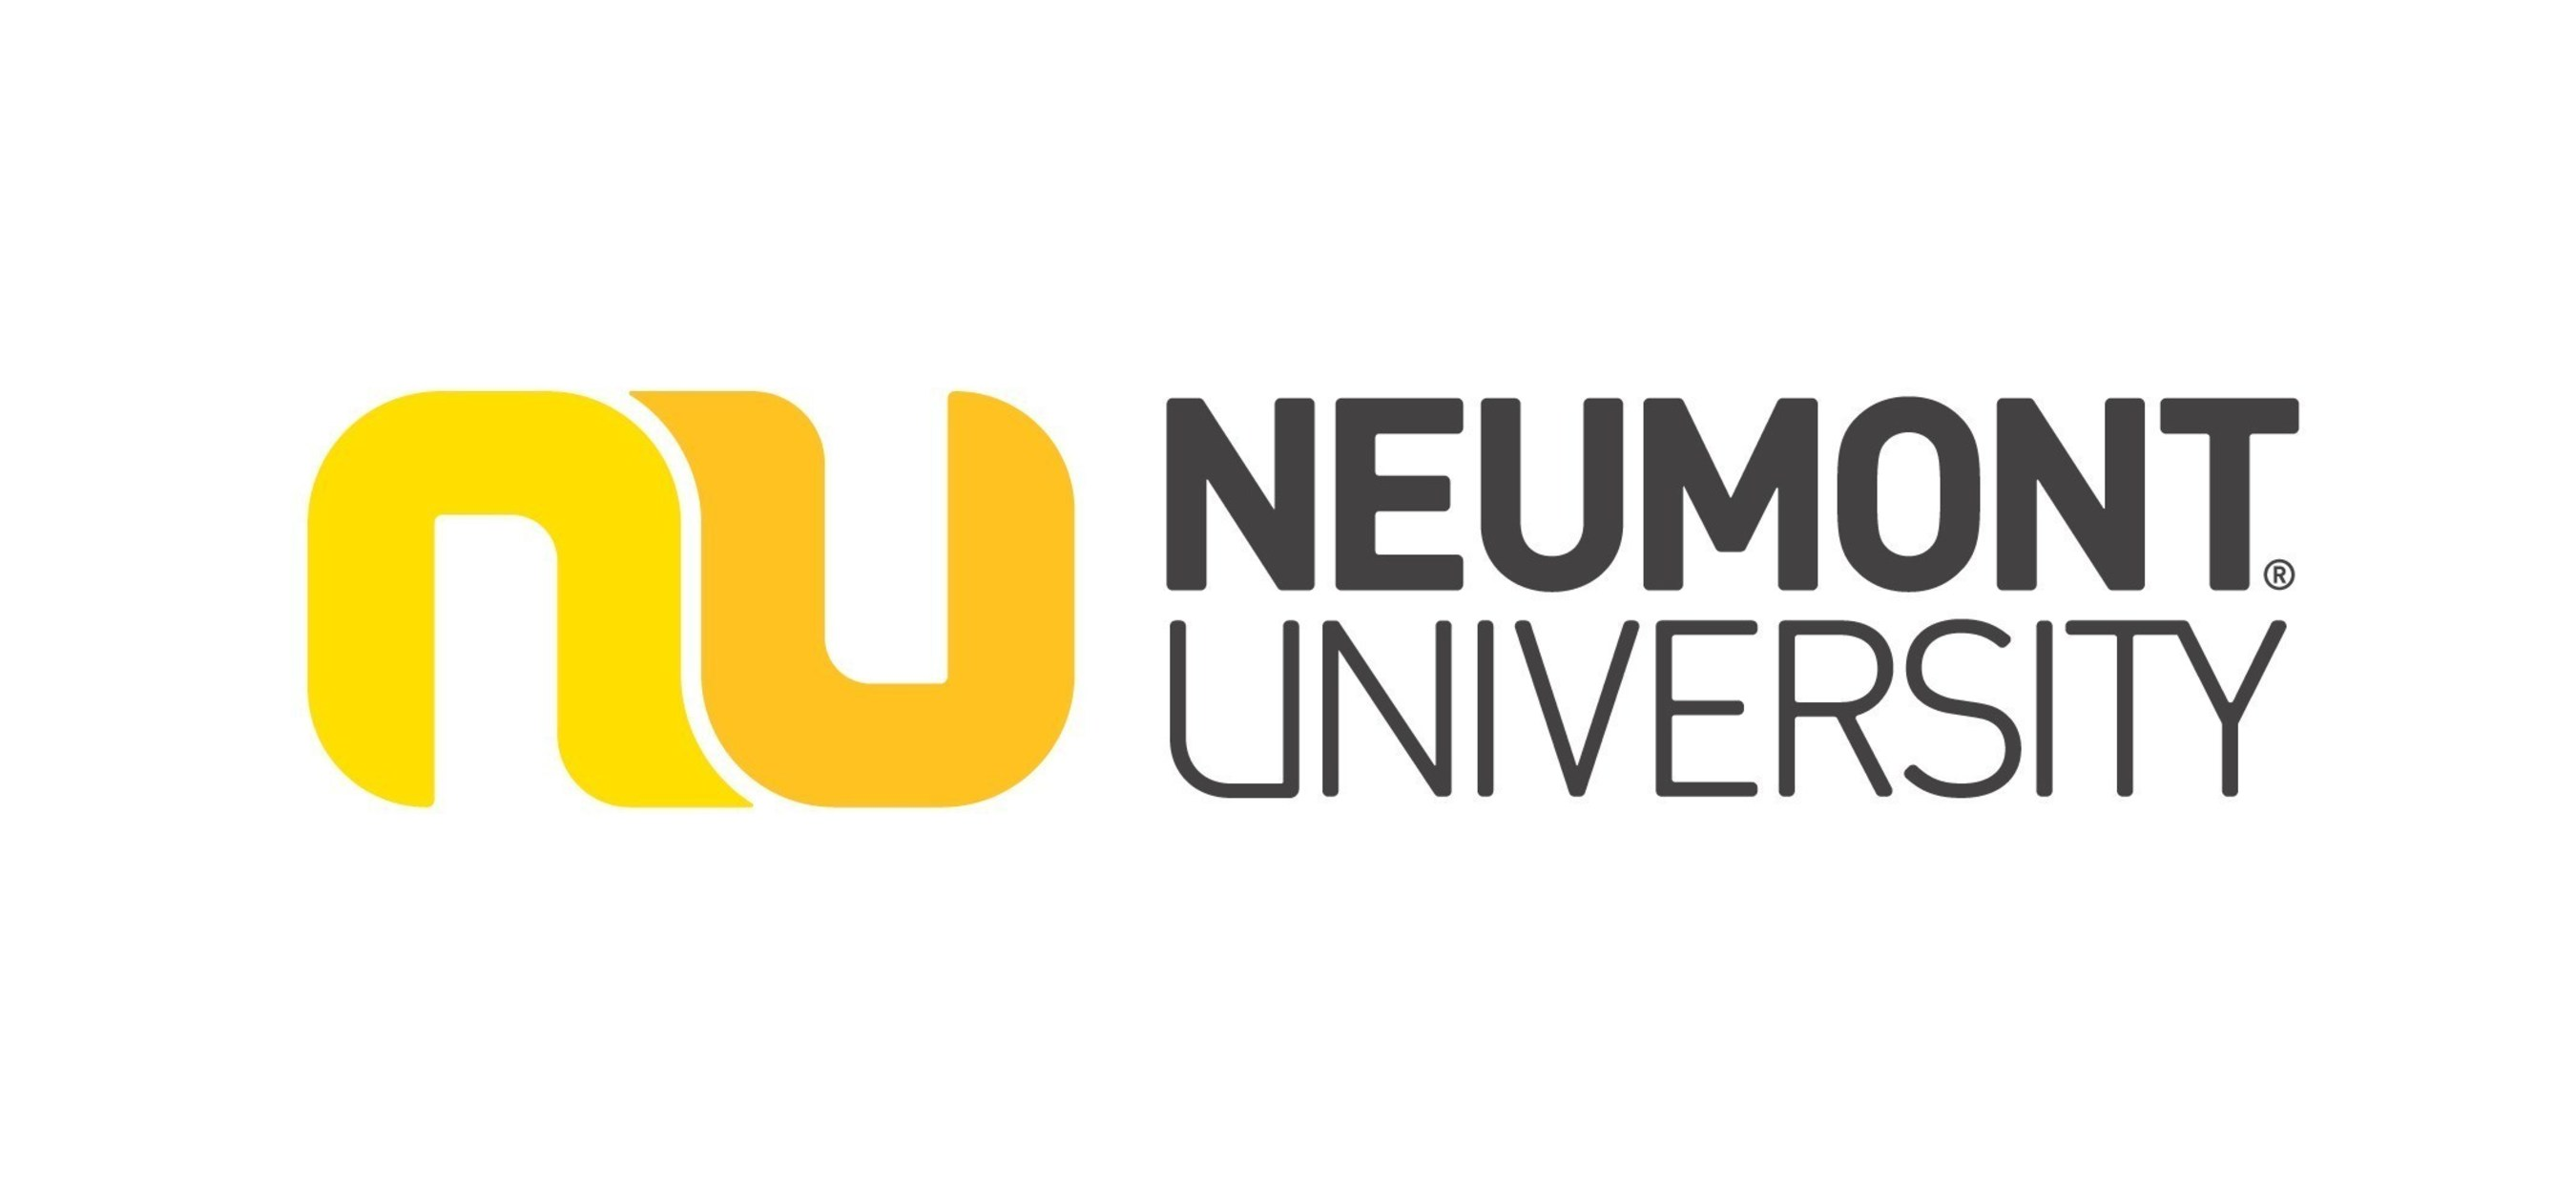 Neumont University Employees Celebrate Success by Giving Back to the Community